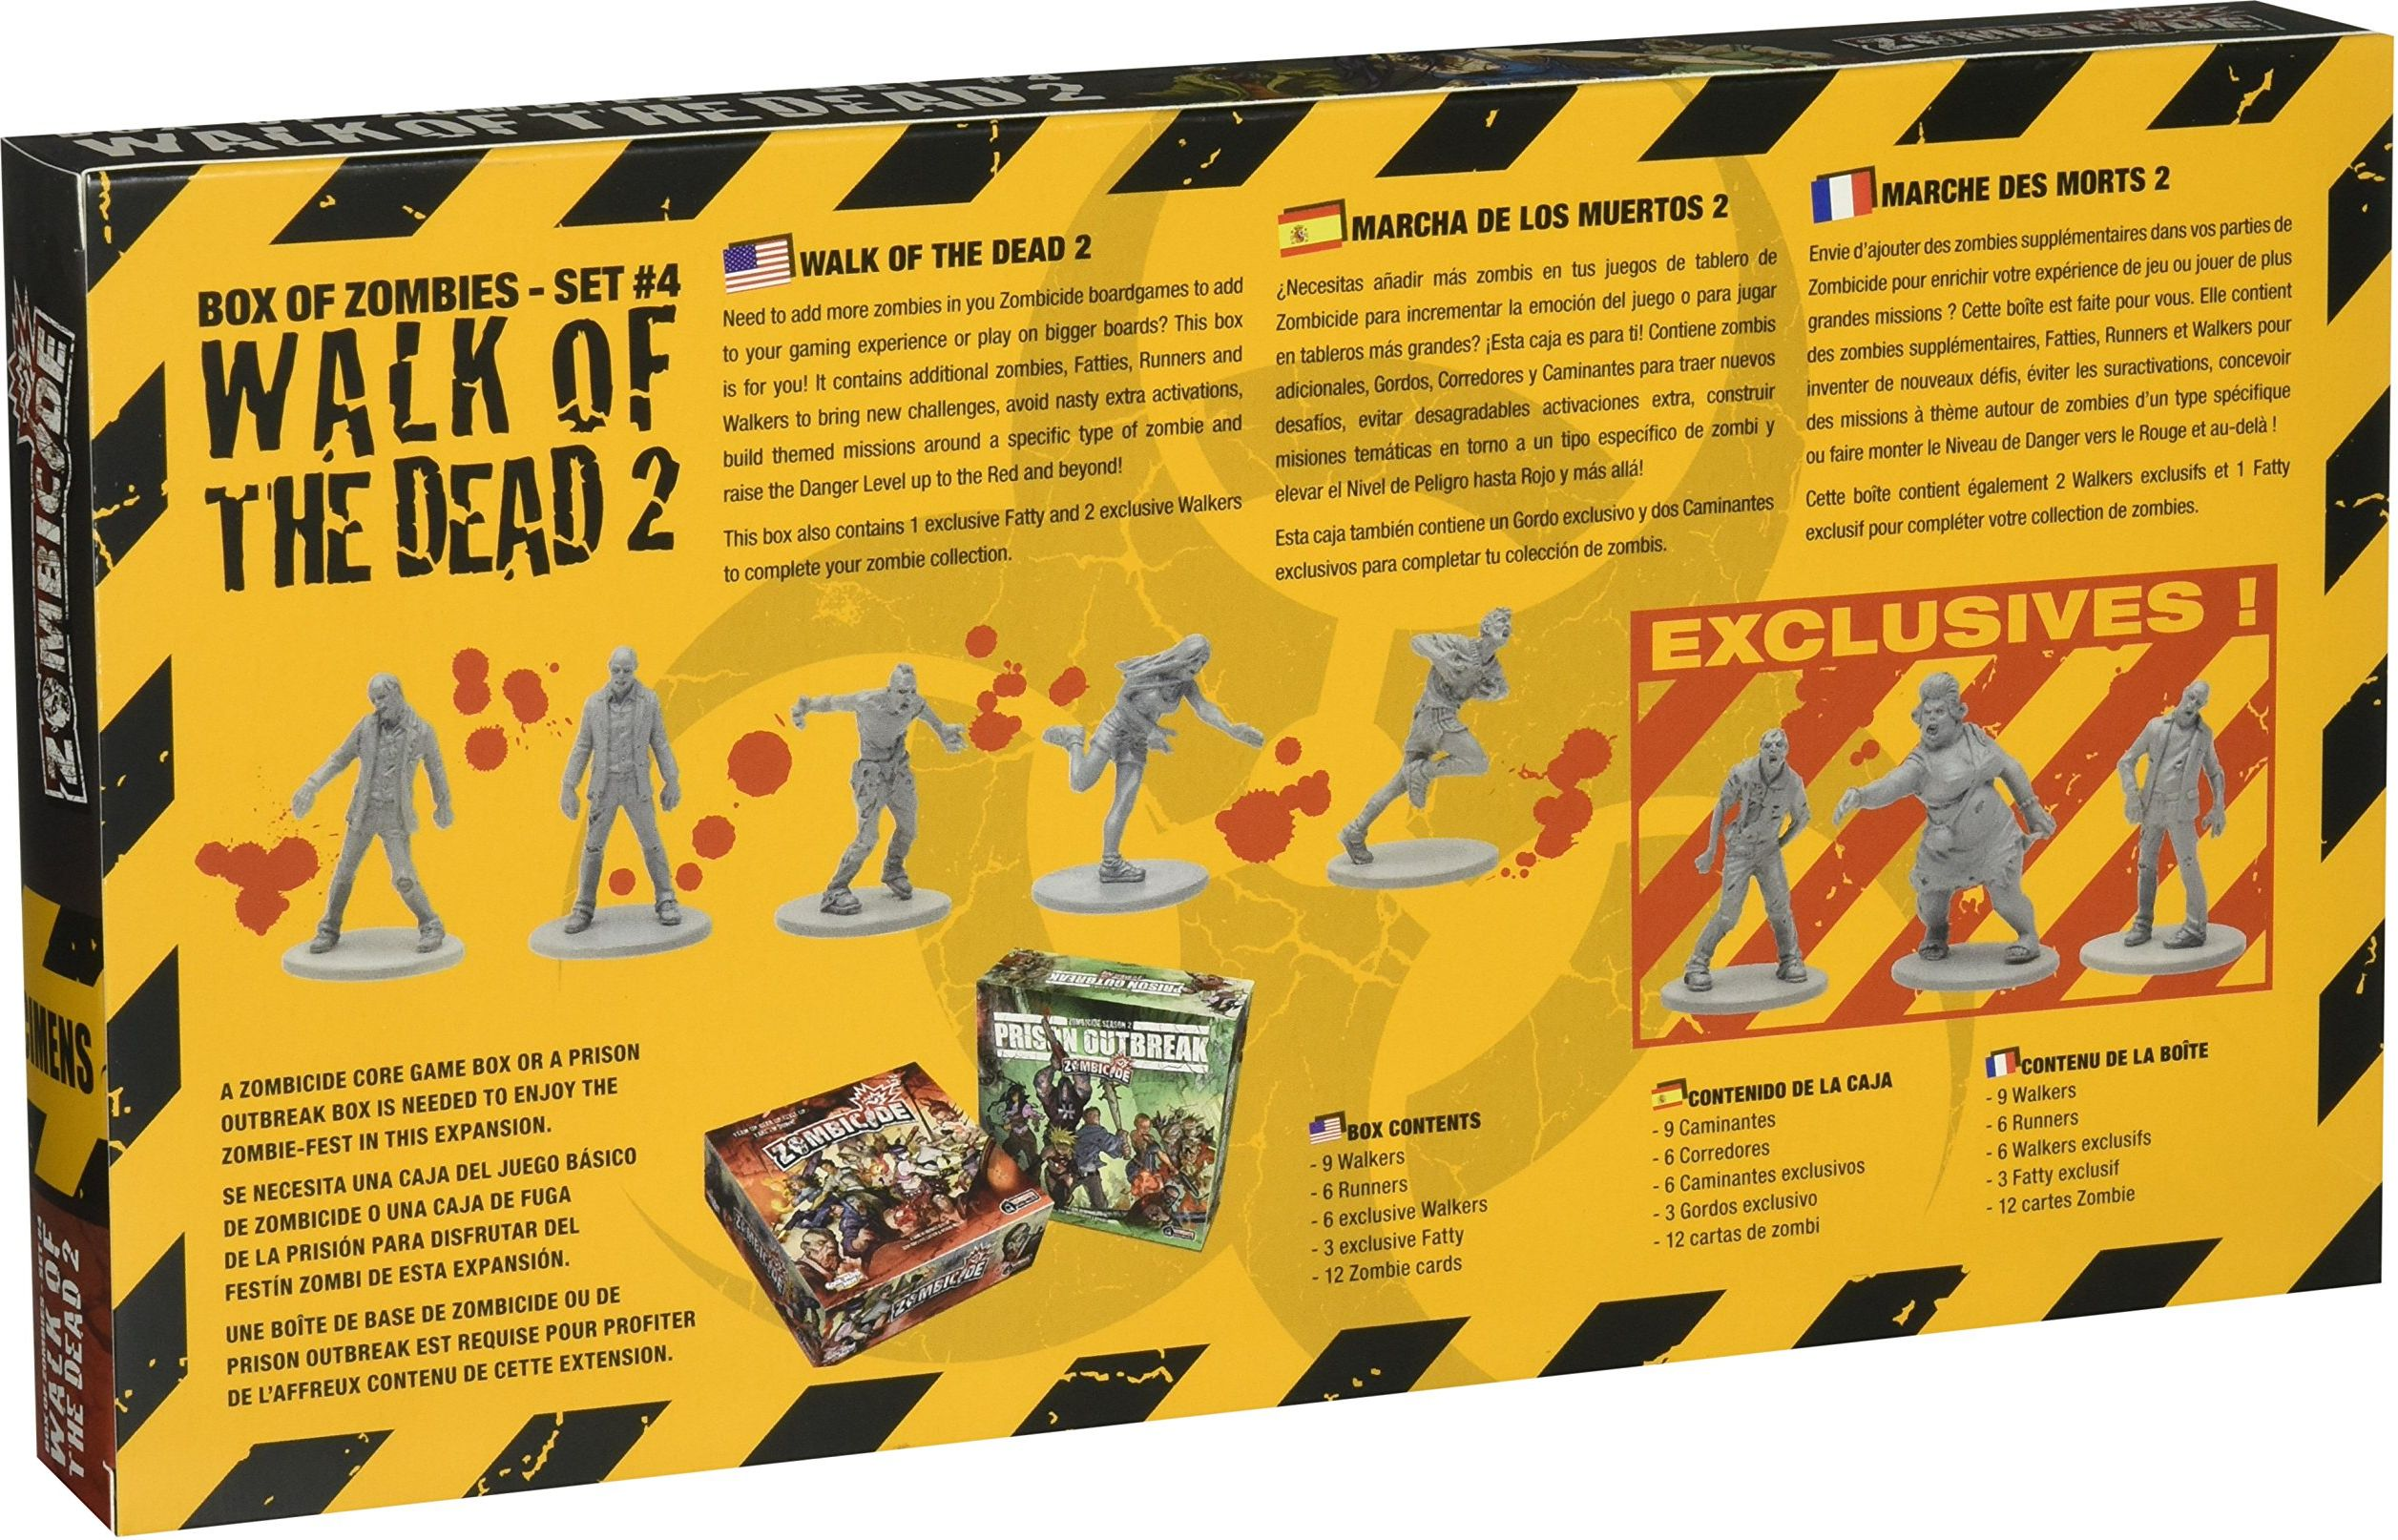 Zombicide+Box+of+Zombies+Set+%234%3A+Walk+of+the+Dead+2+%5Btrans.boxback%5D